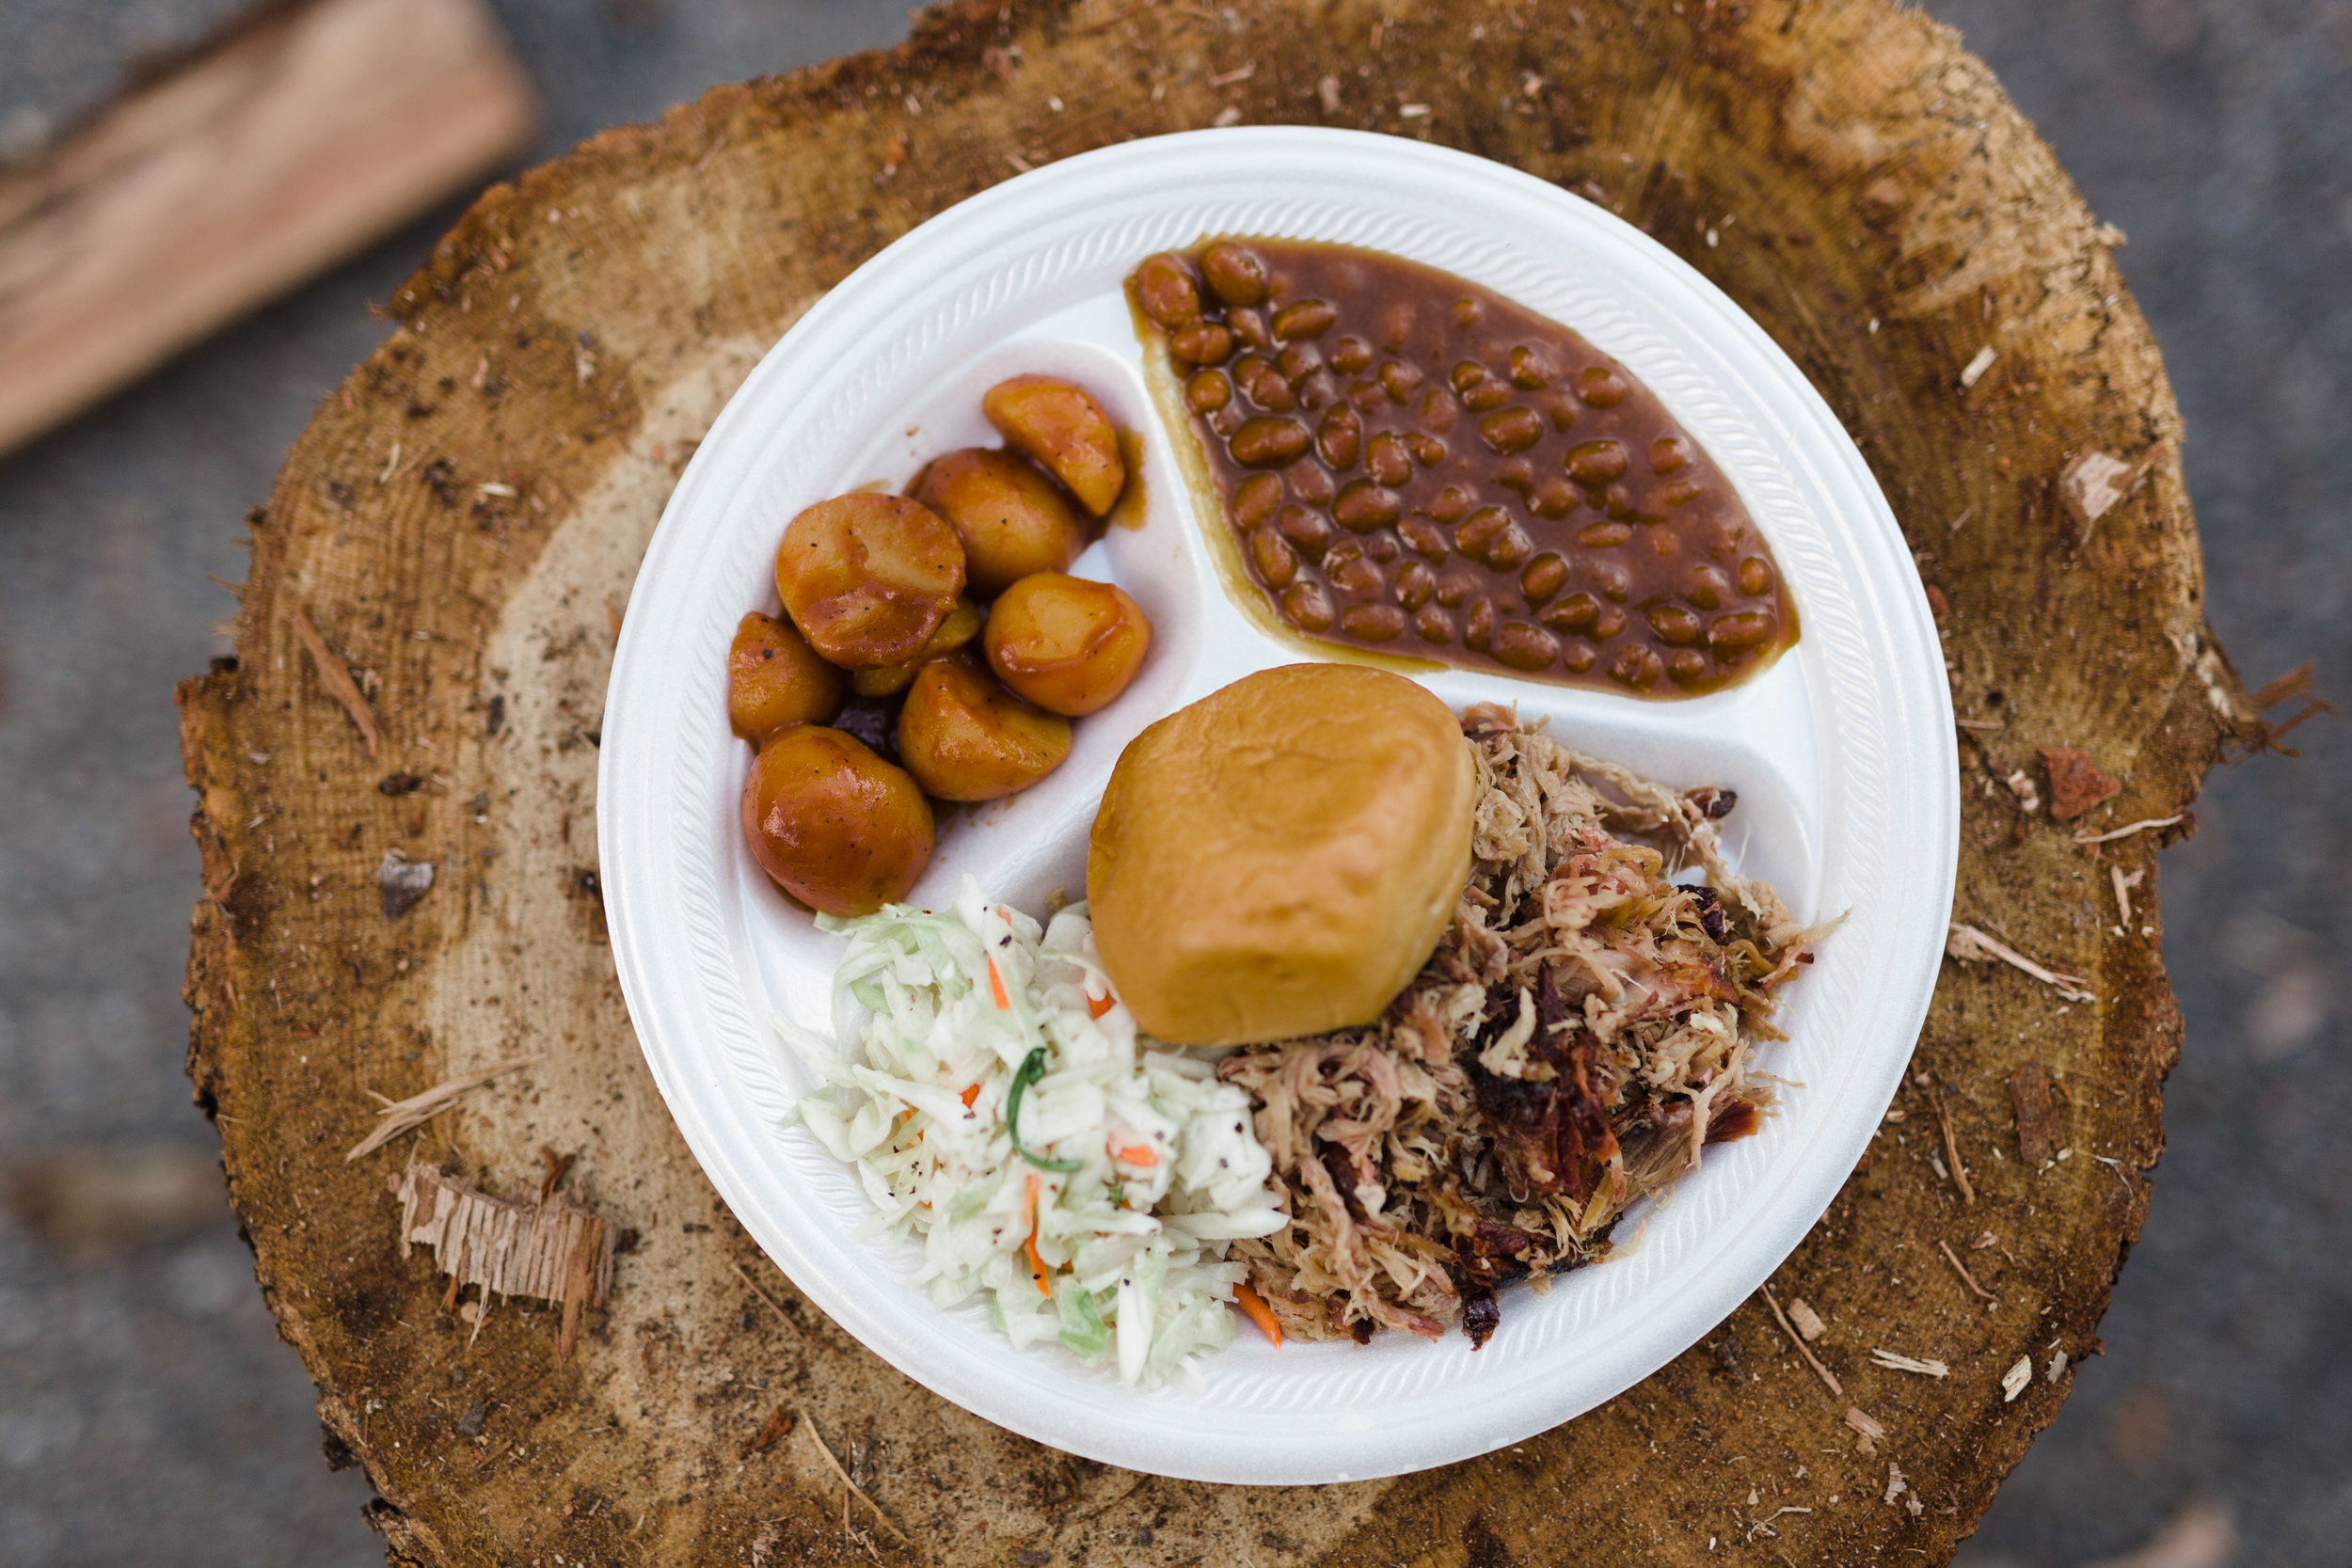 Matthew's plate at the Barbecue Experience Dinner in October.